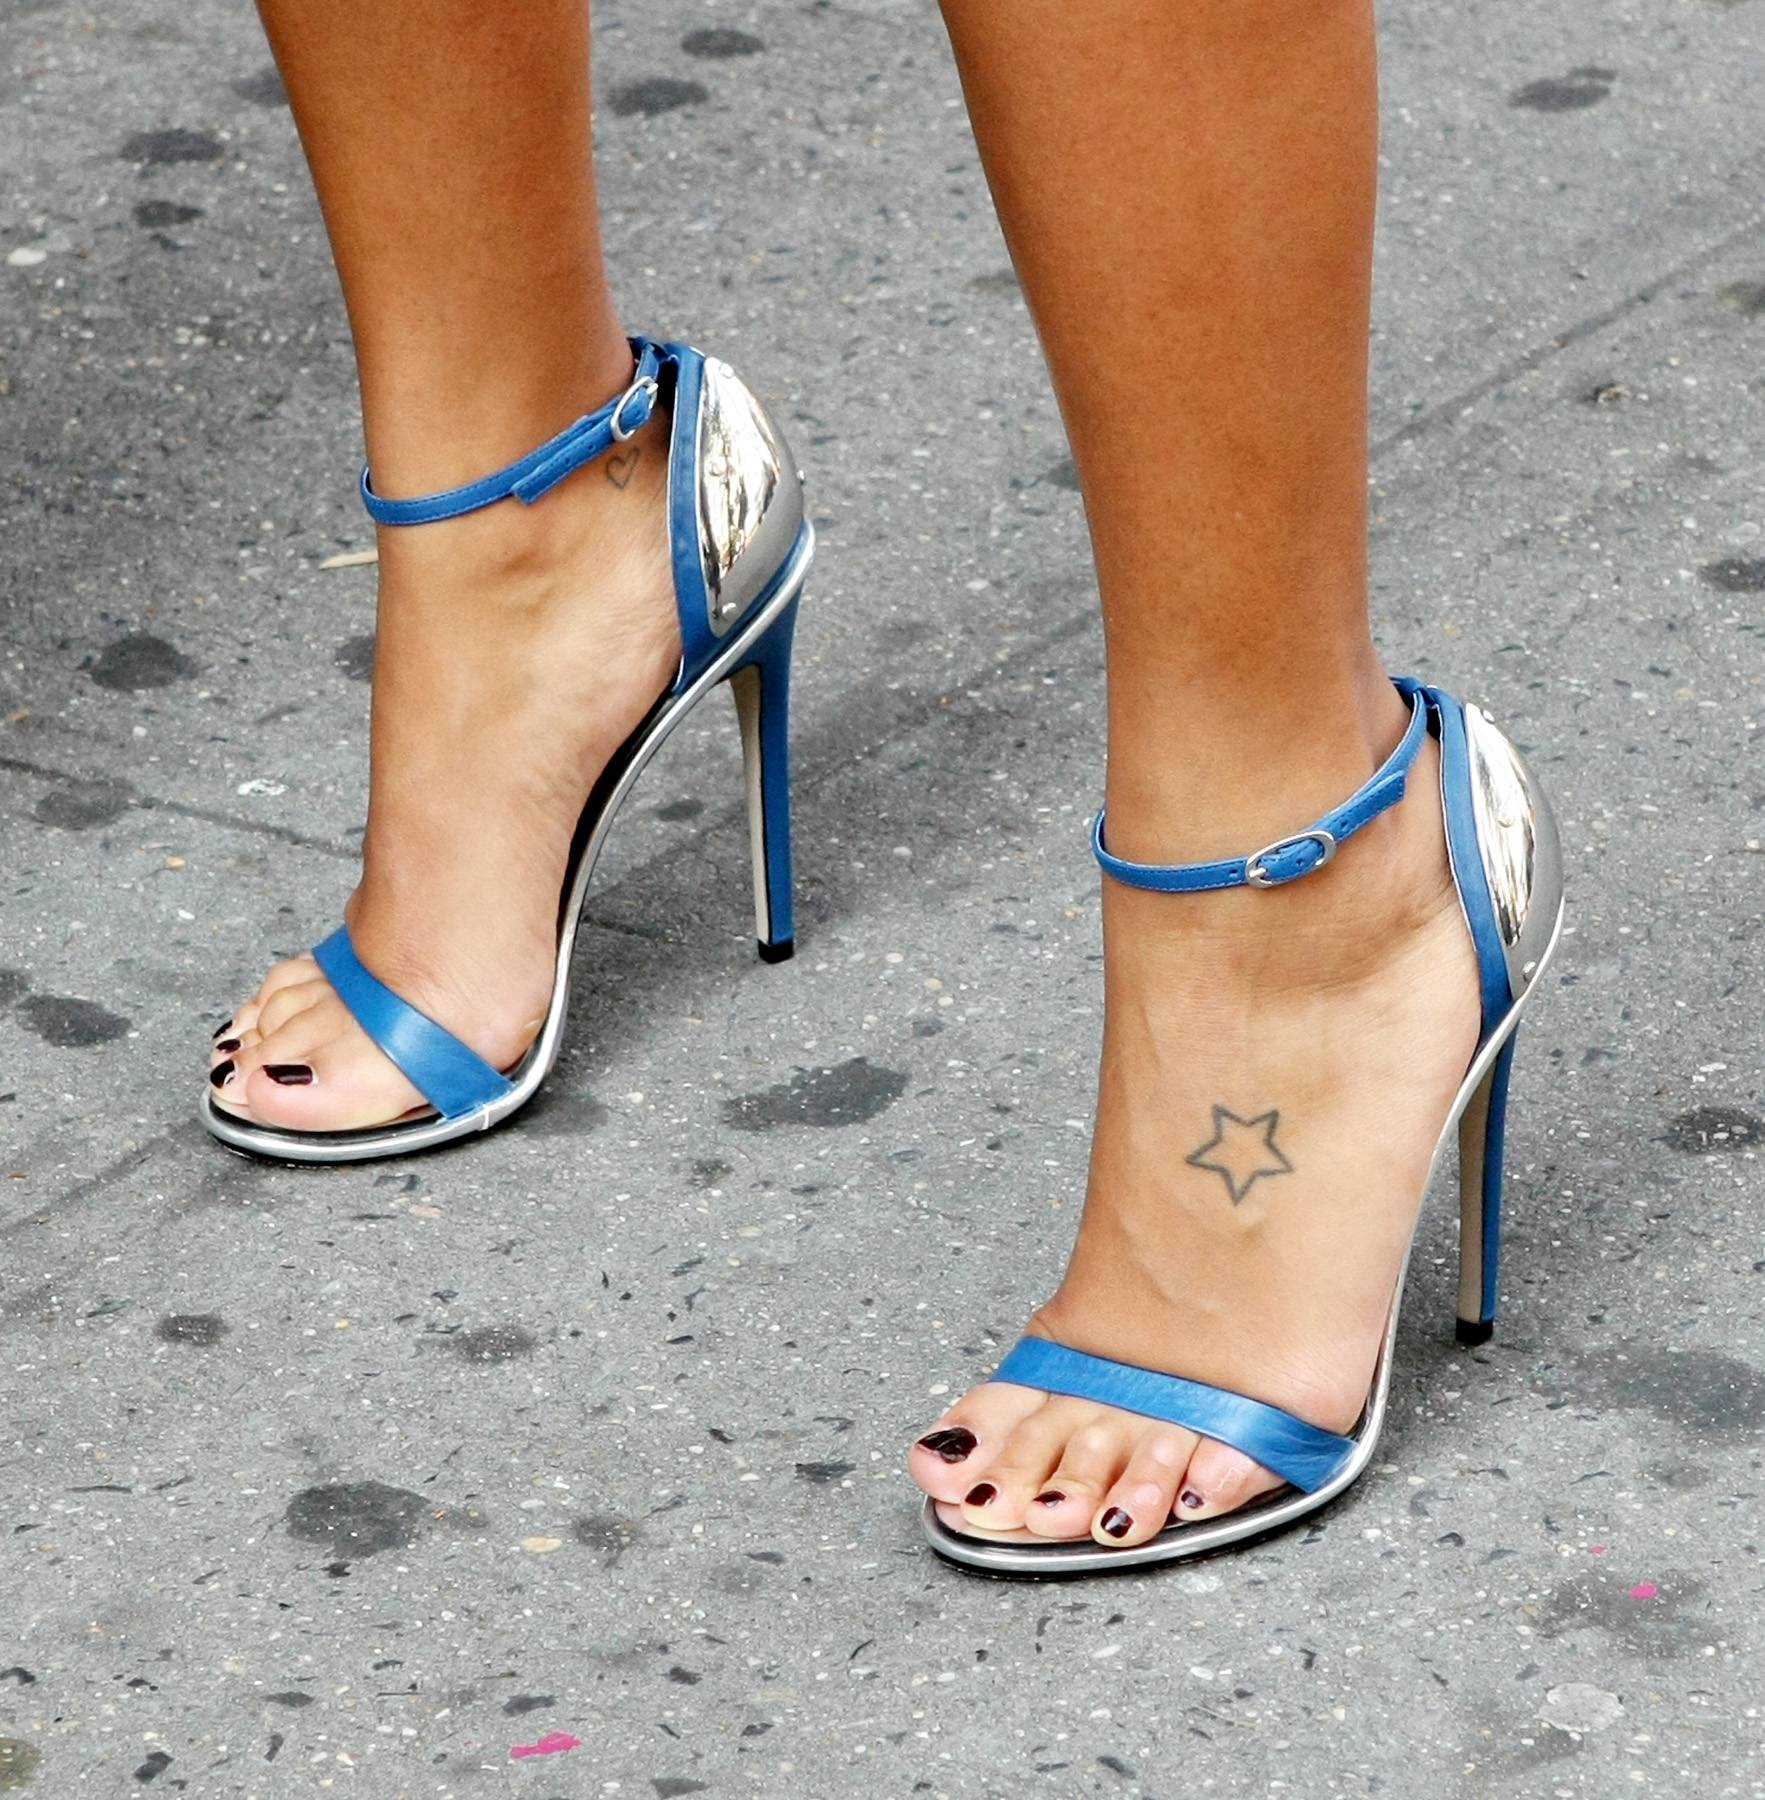 Electric Blue - Angela Simmons rocks some electric blue open toe strap ups on the set.(Photo: Bennett Raglin/BET/Getty Images for BET)